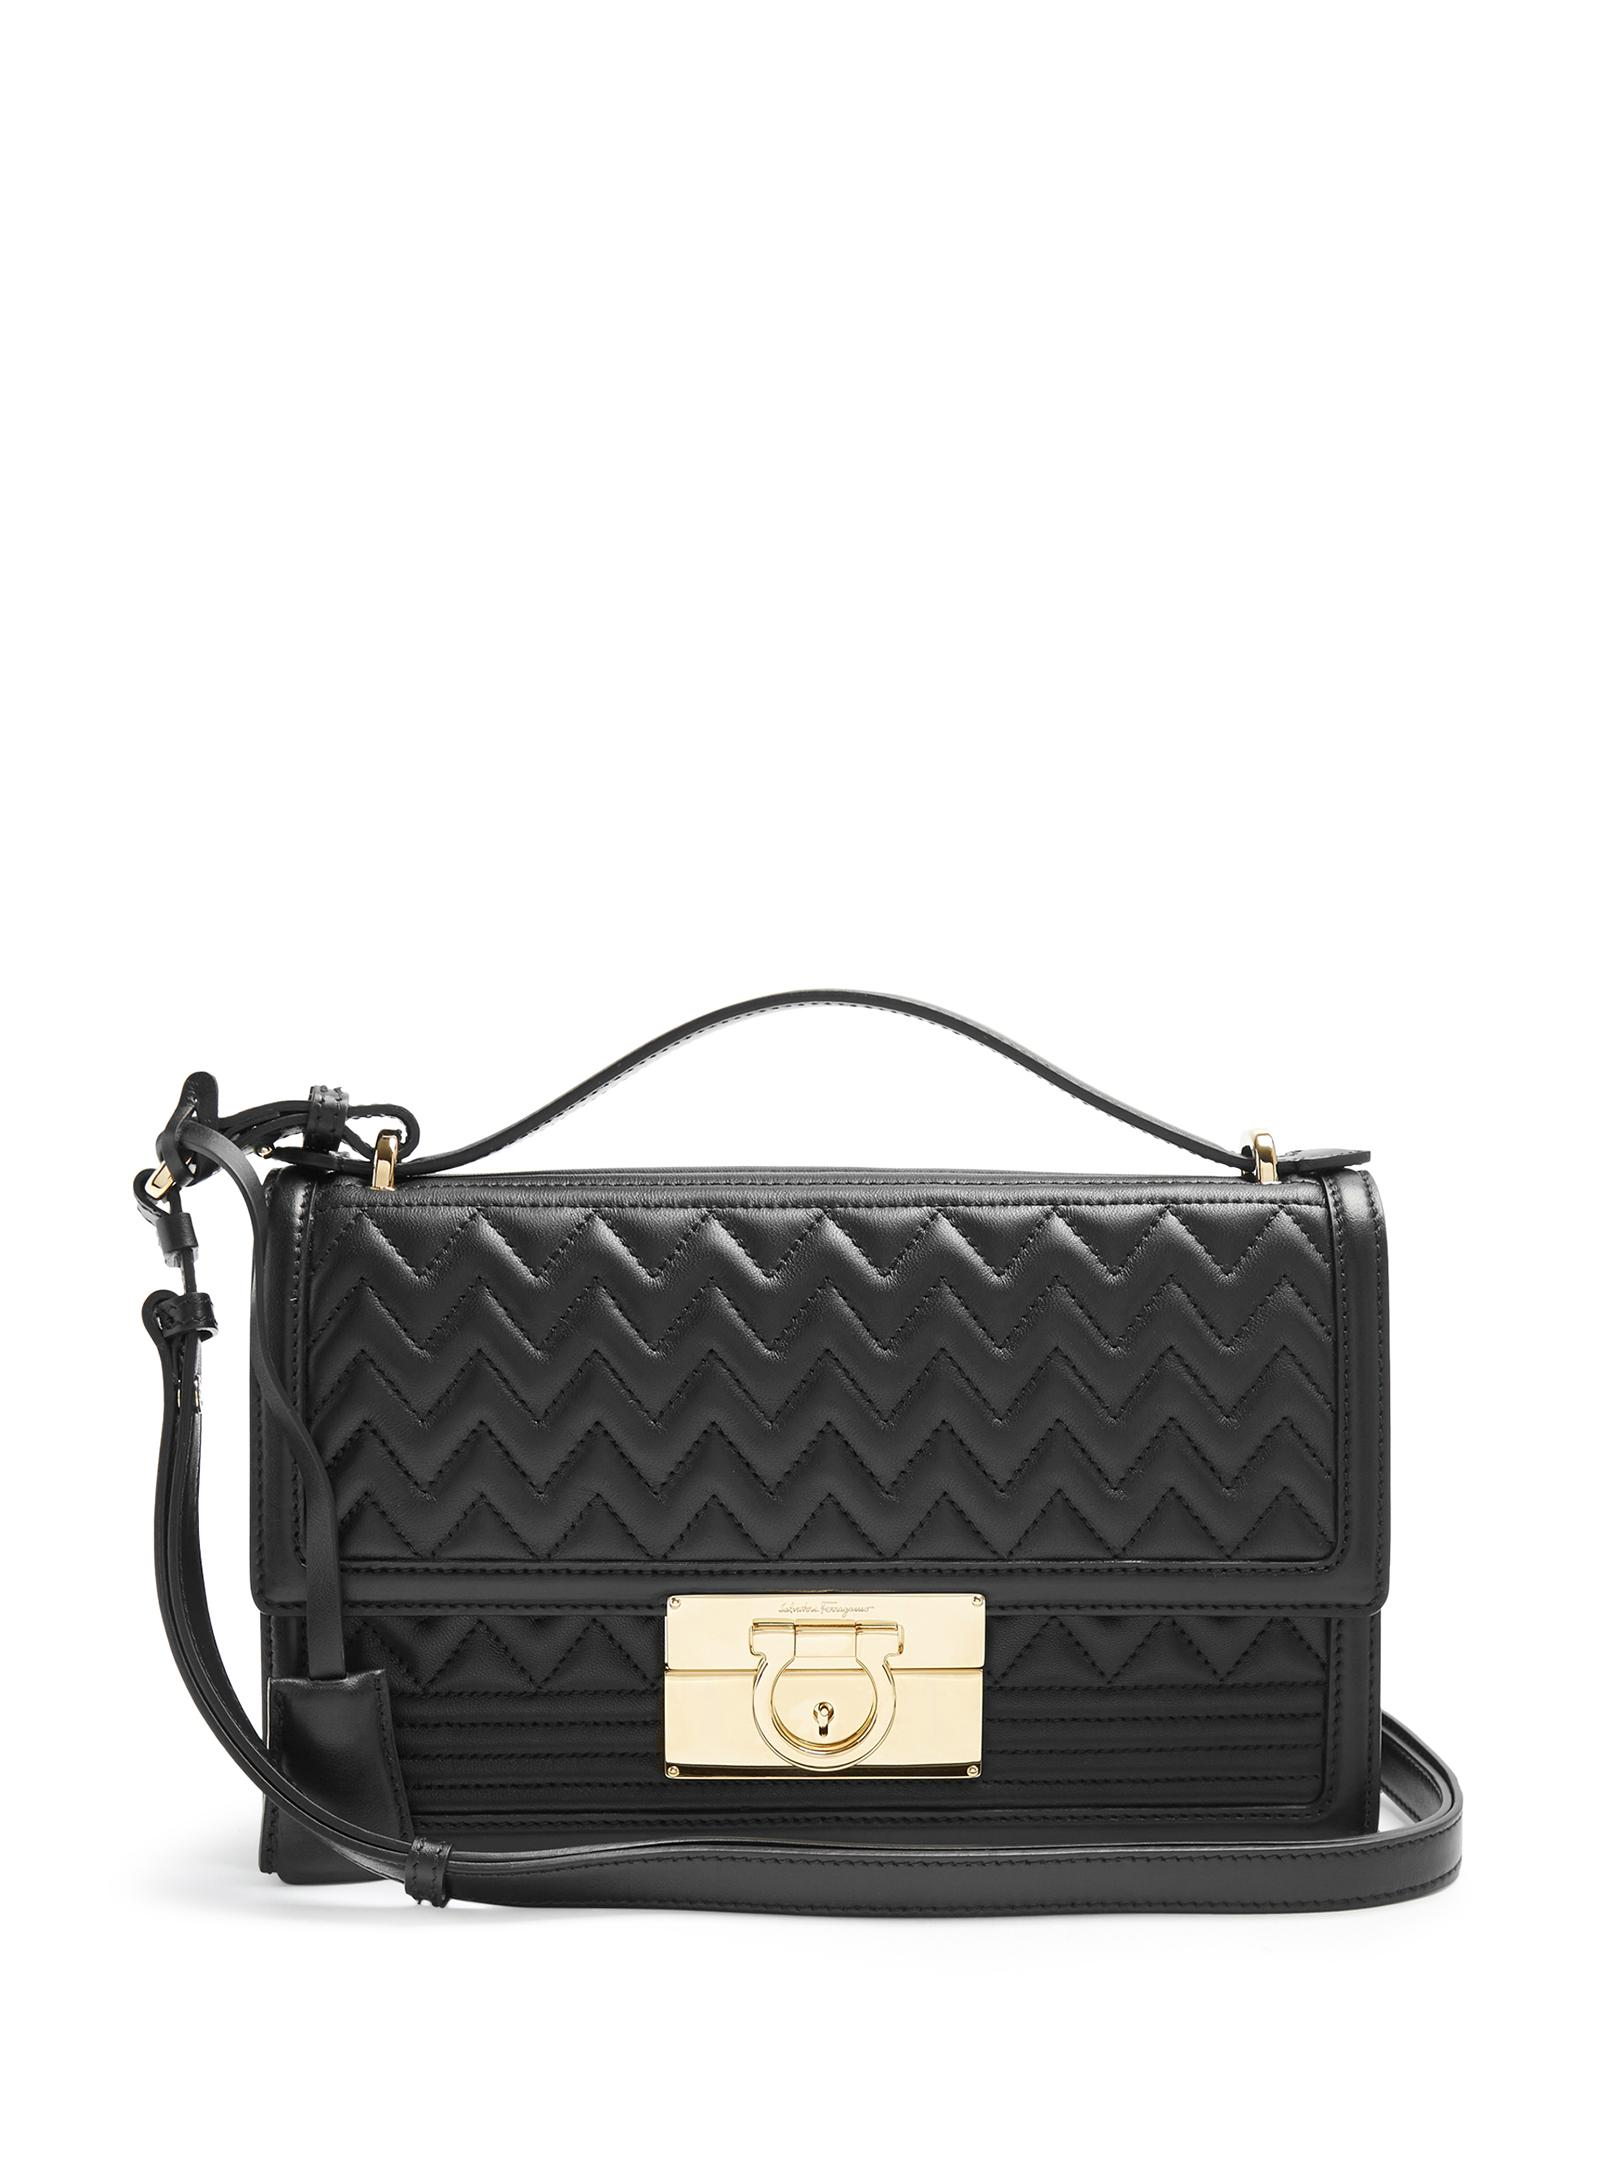 Ferragamo Aileen Quilted-leather Shoulder Bag in Black   Lyst 559e9a5fab